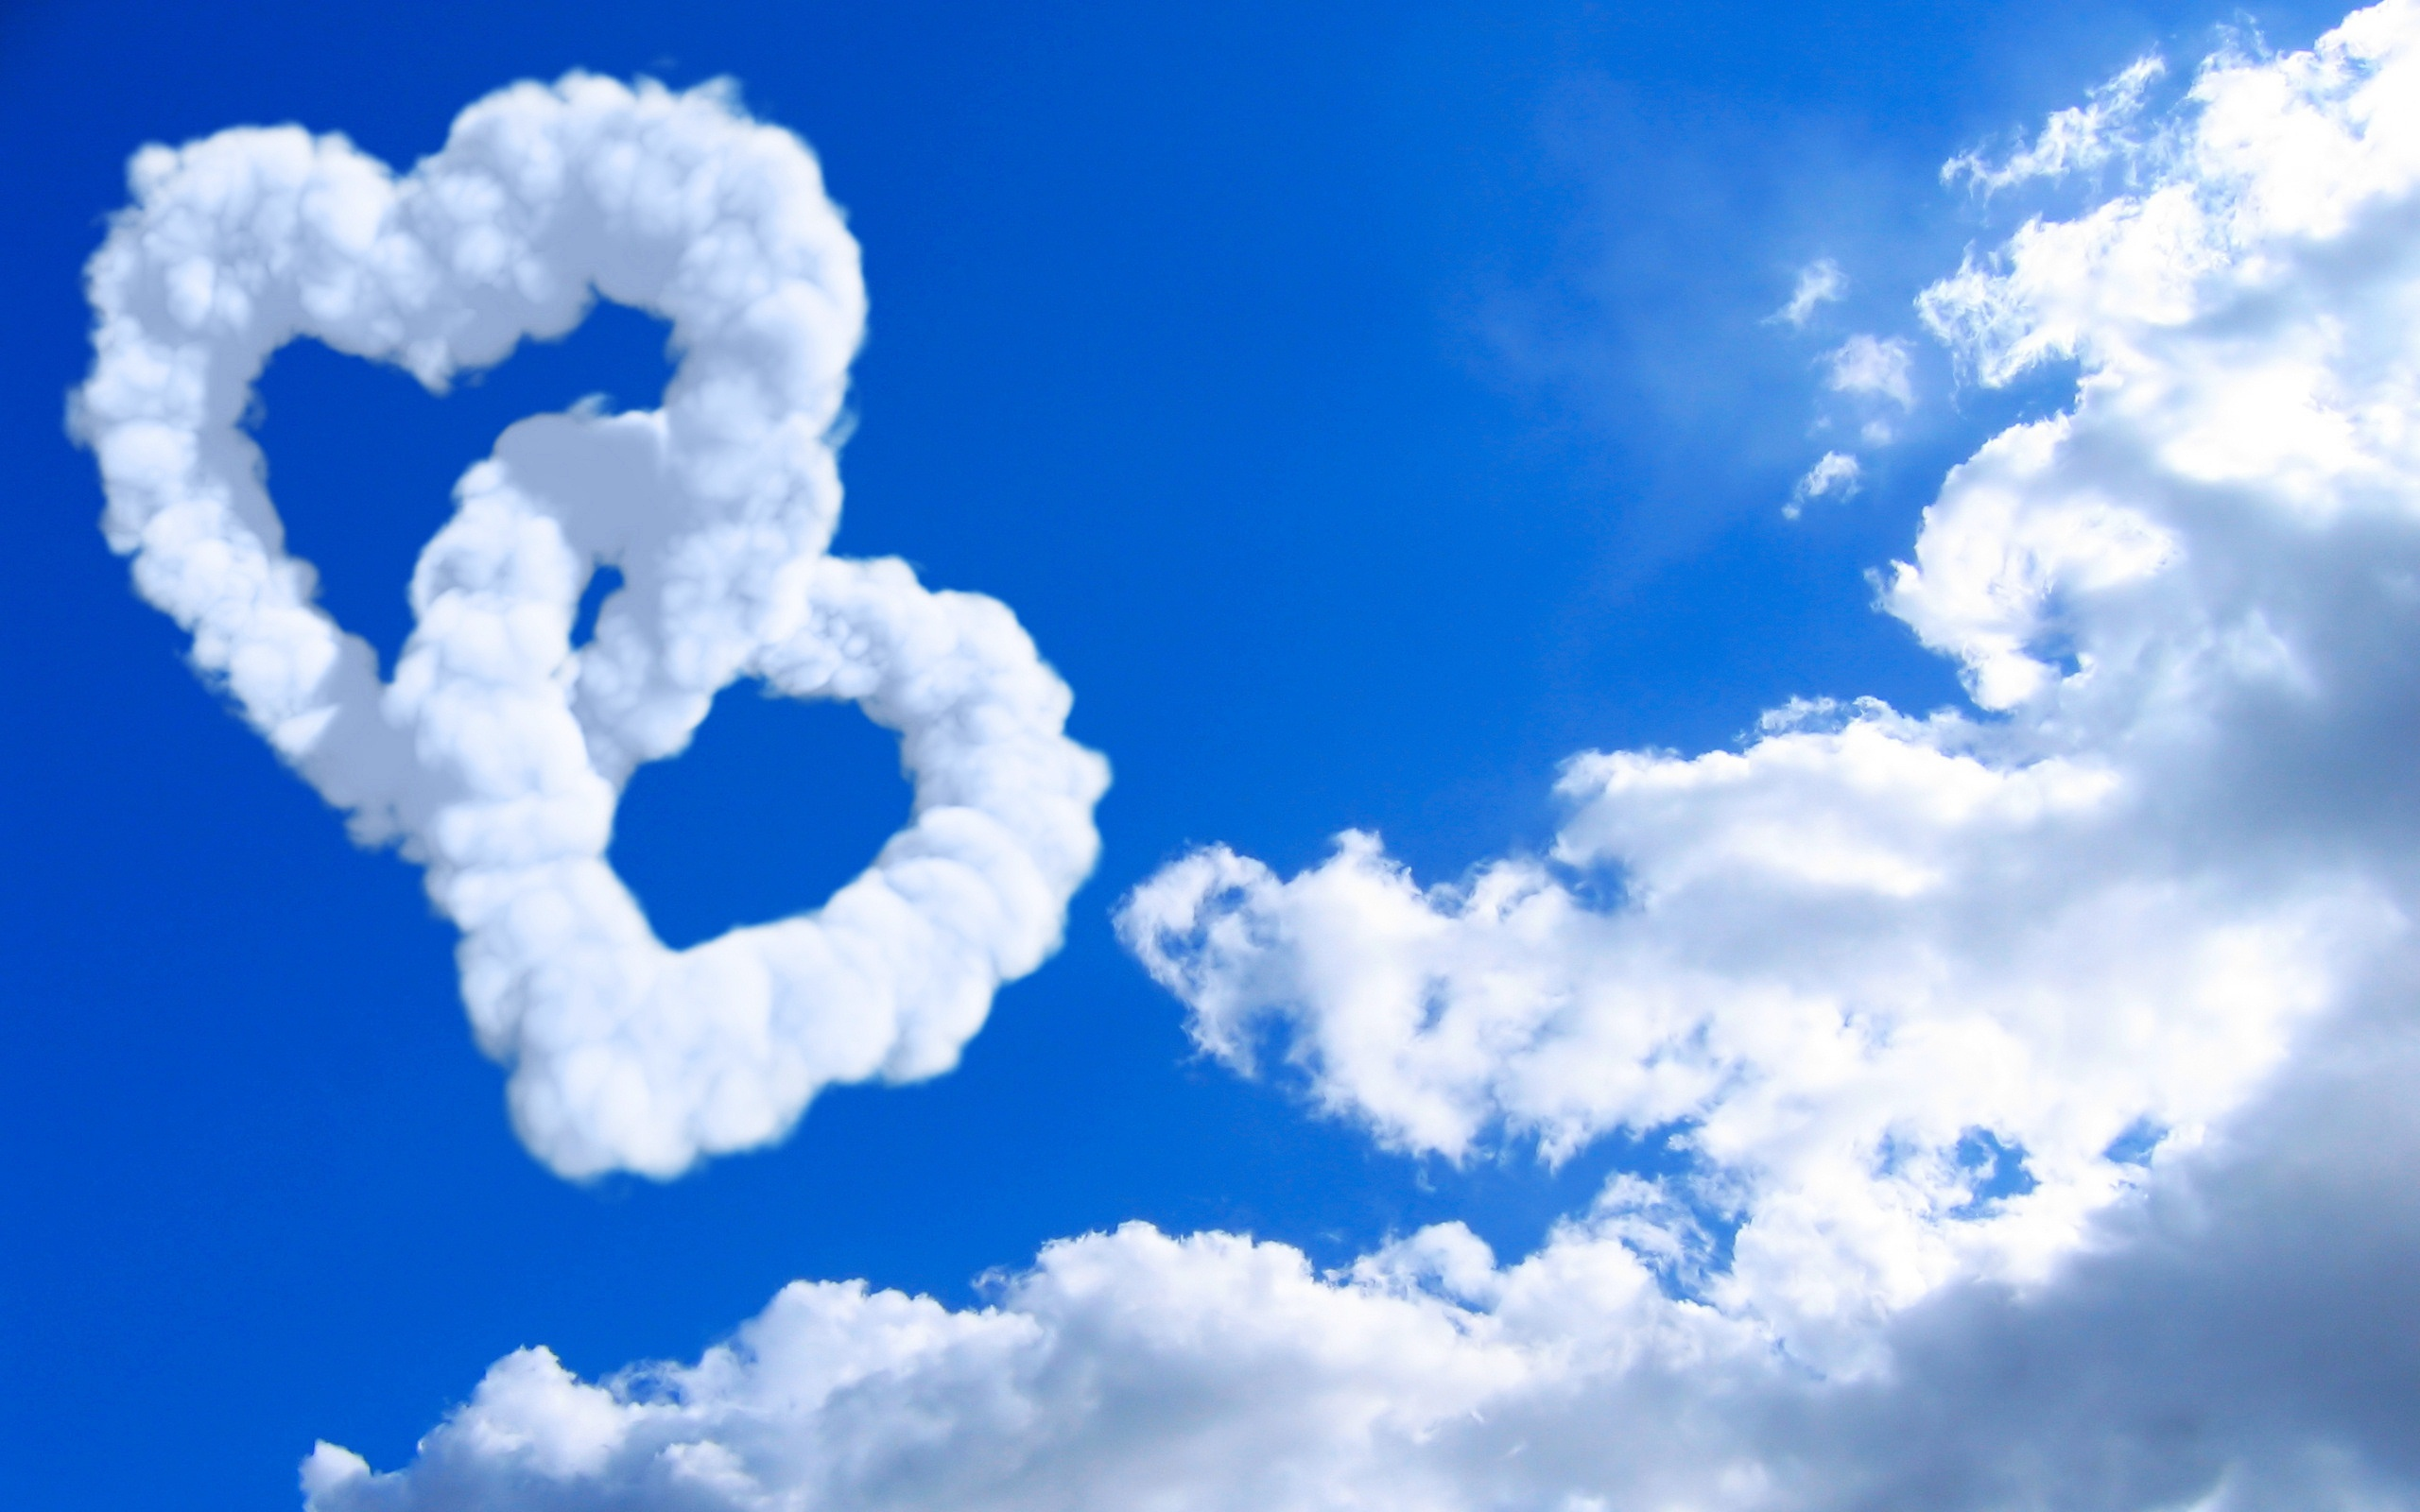 Hearts in Clouds Wallpapers HD Wallpapers 2560x1600